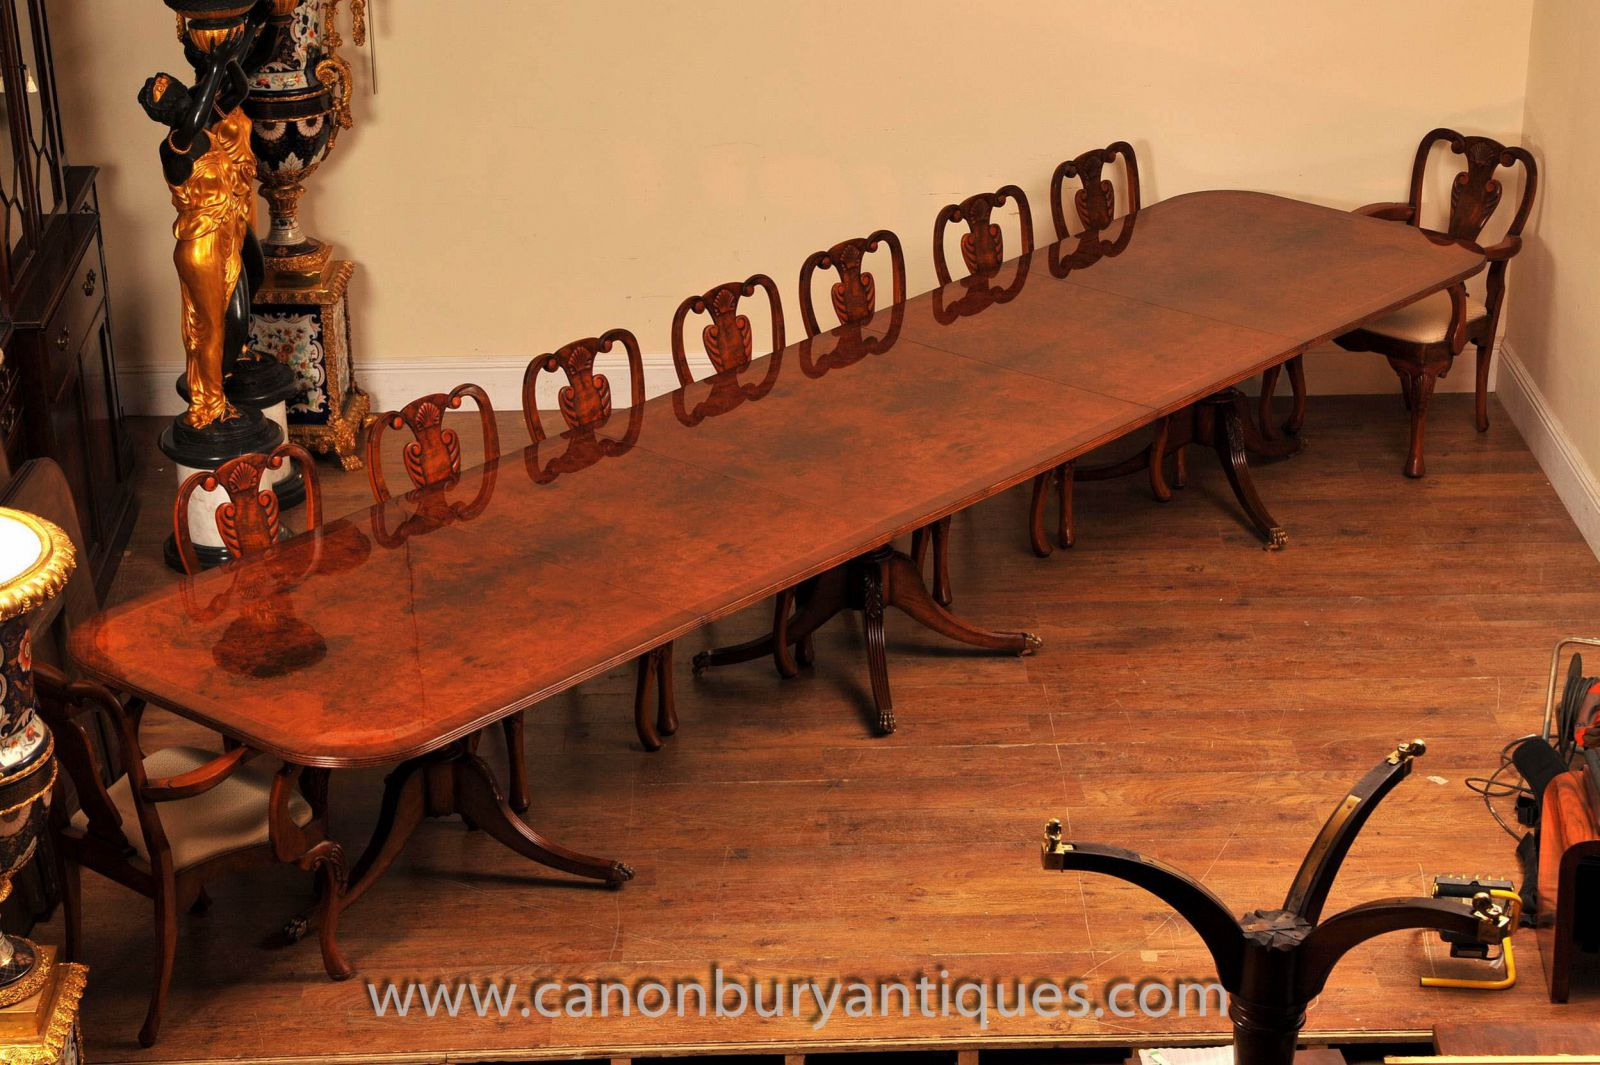 Extending Regency tables - how big do you want to go?